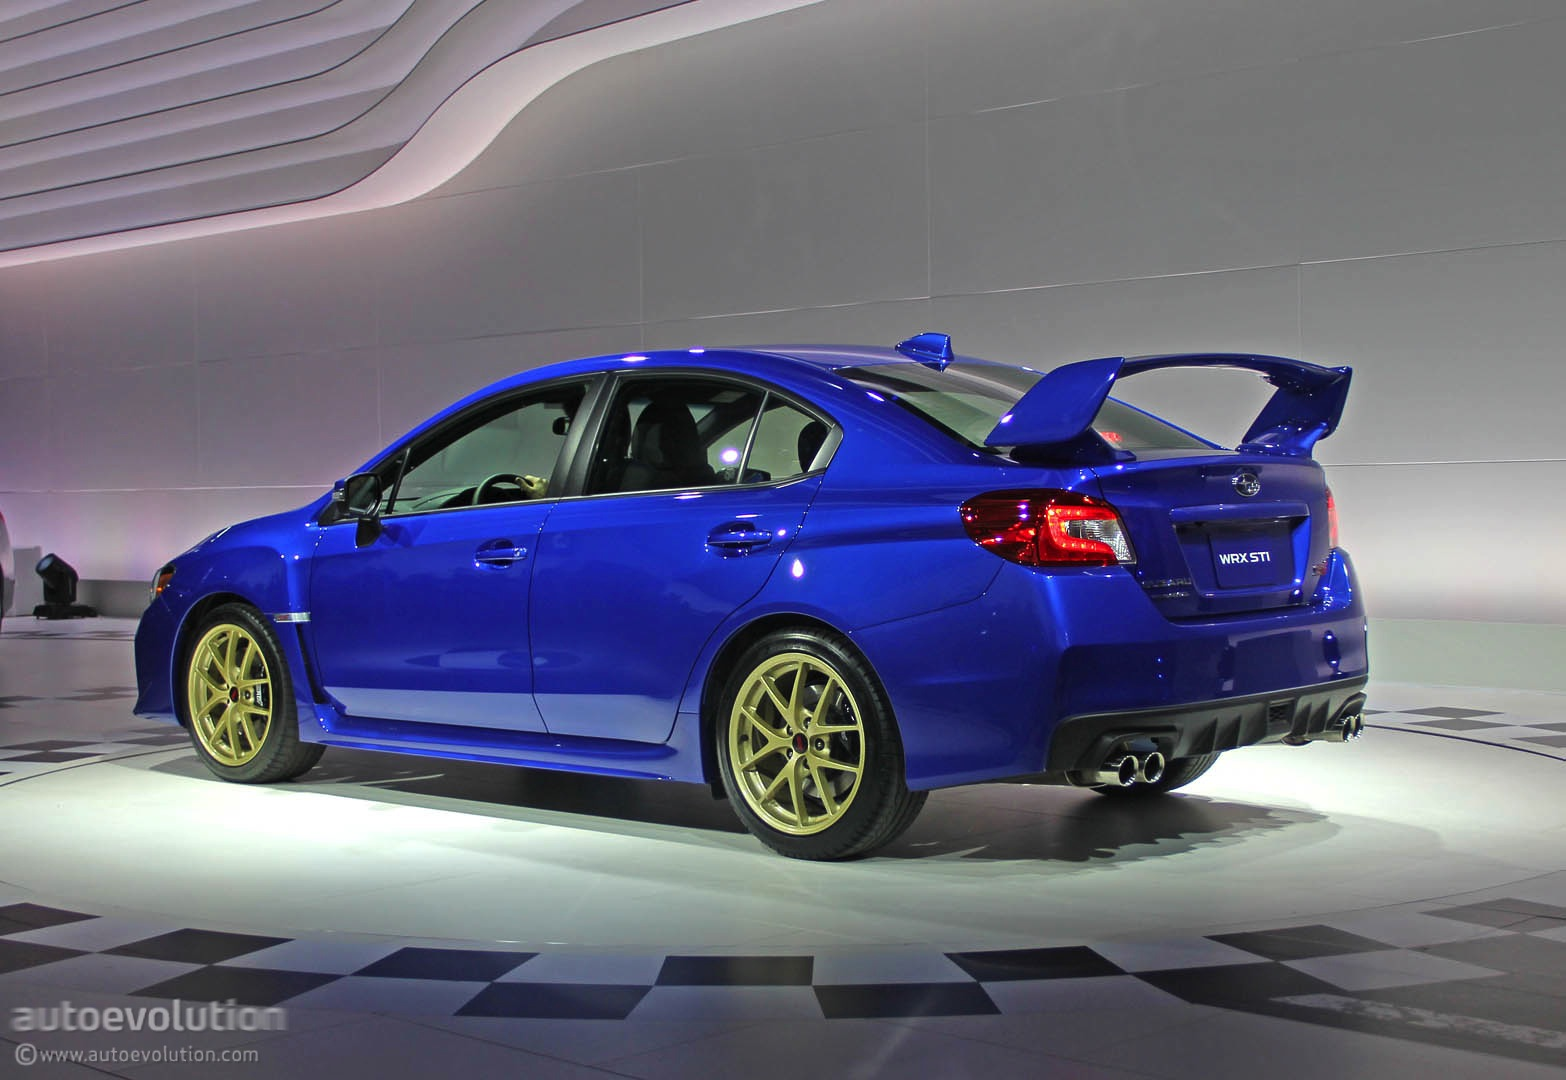 Buy Tires Online >> 2015 Subaru WRX STI Is Winged to the Teeth [Live Photos